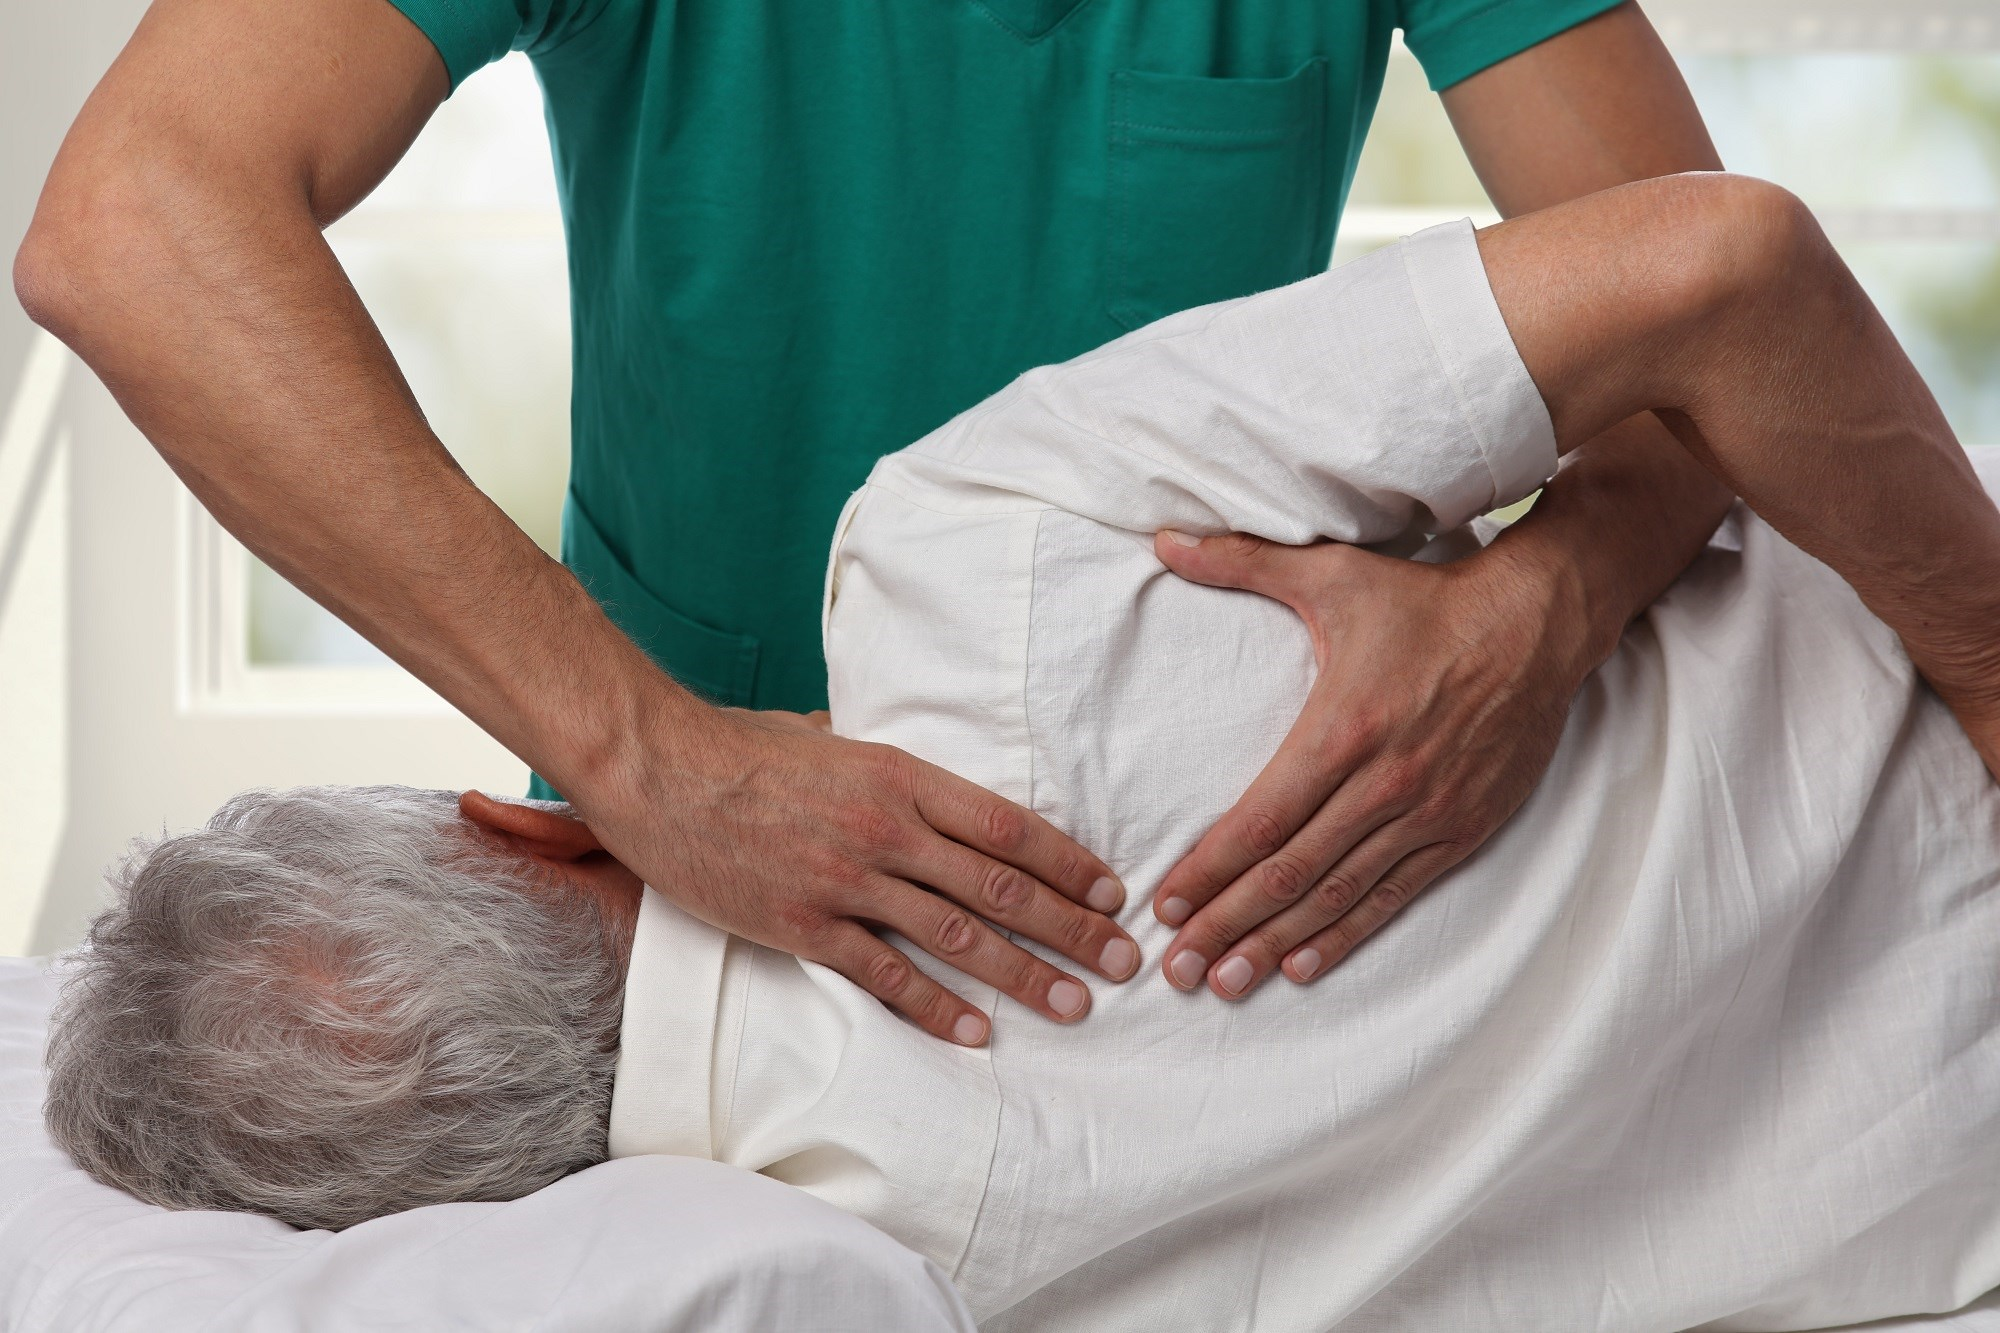 Manual Therapy vs Opioids for Management of Shoulder, Spine Pain